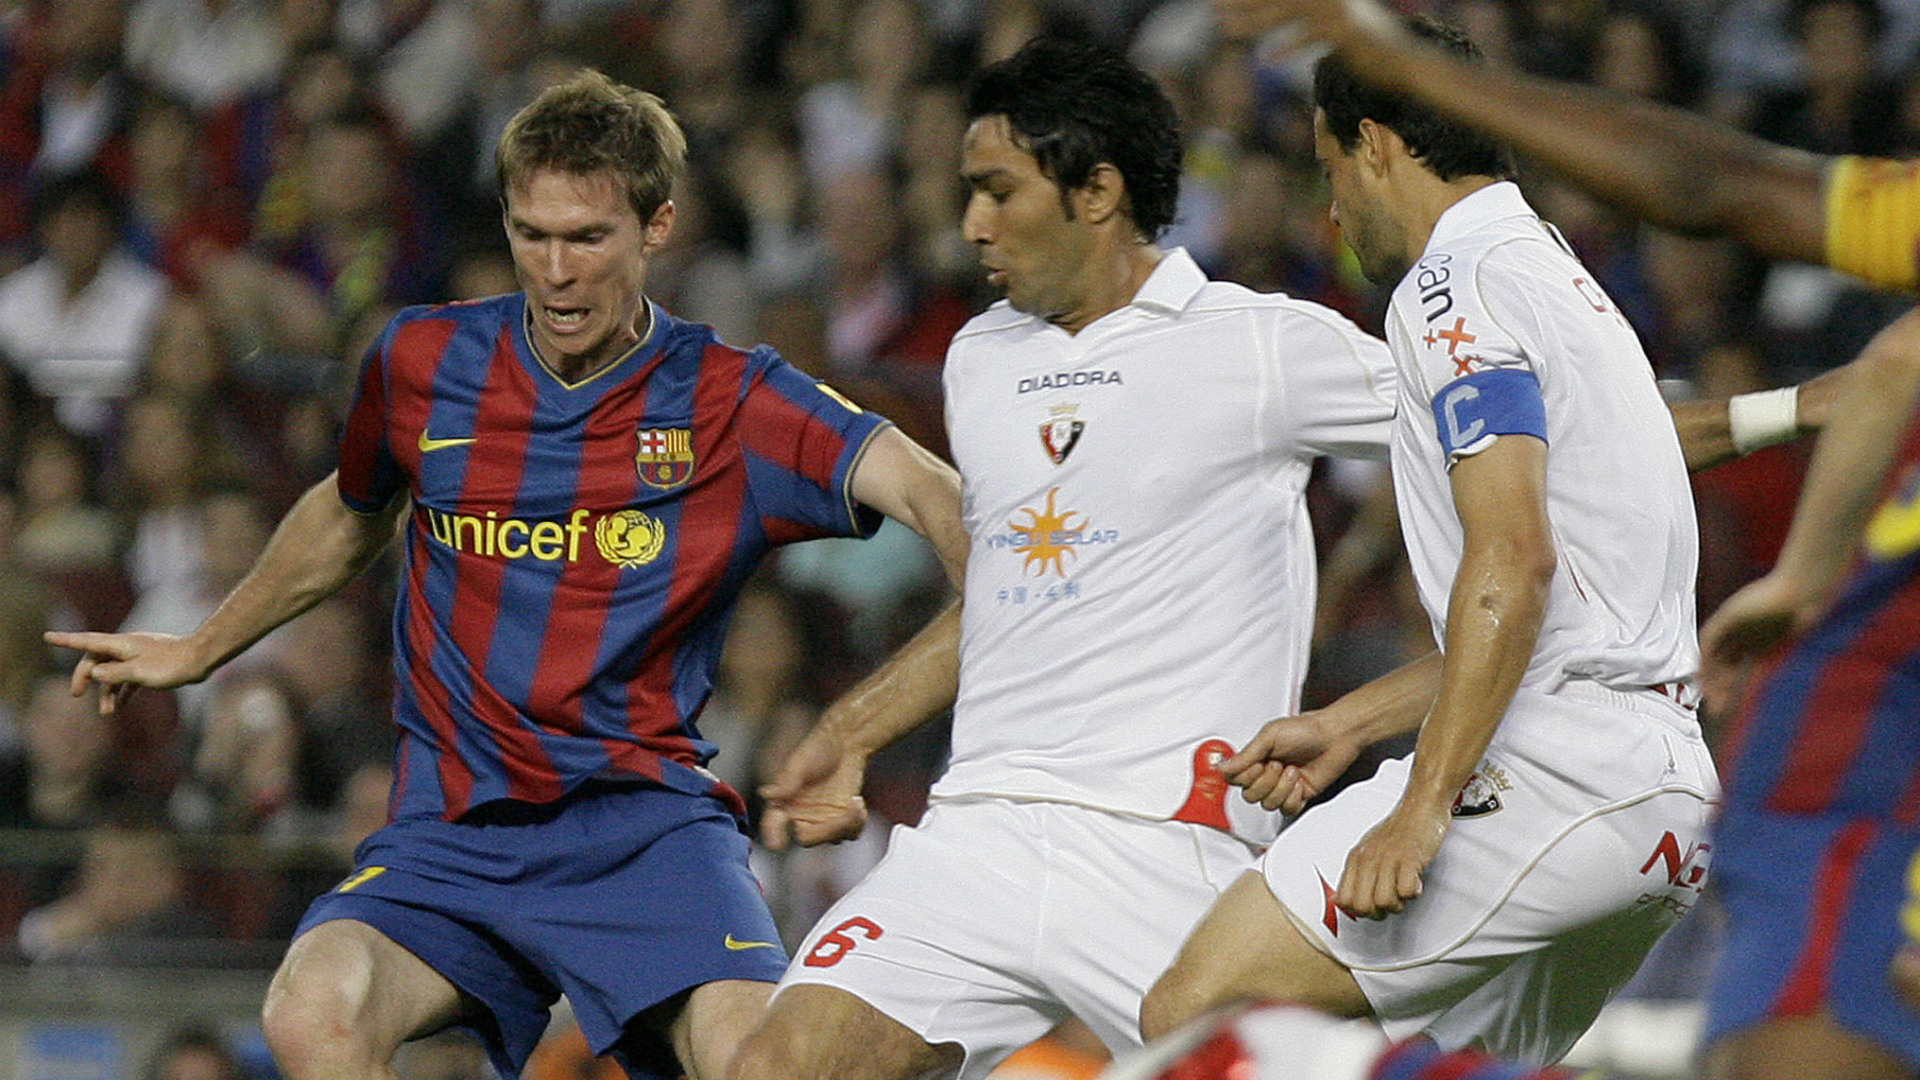 Hleb ex Barcelona player